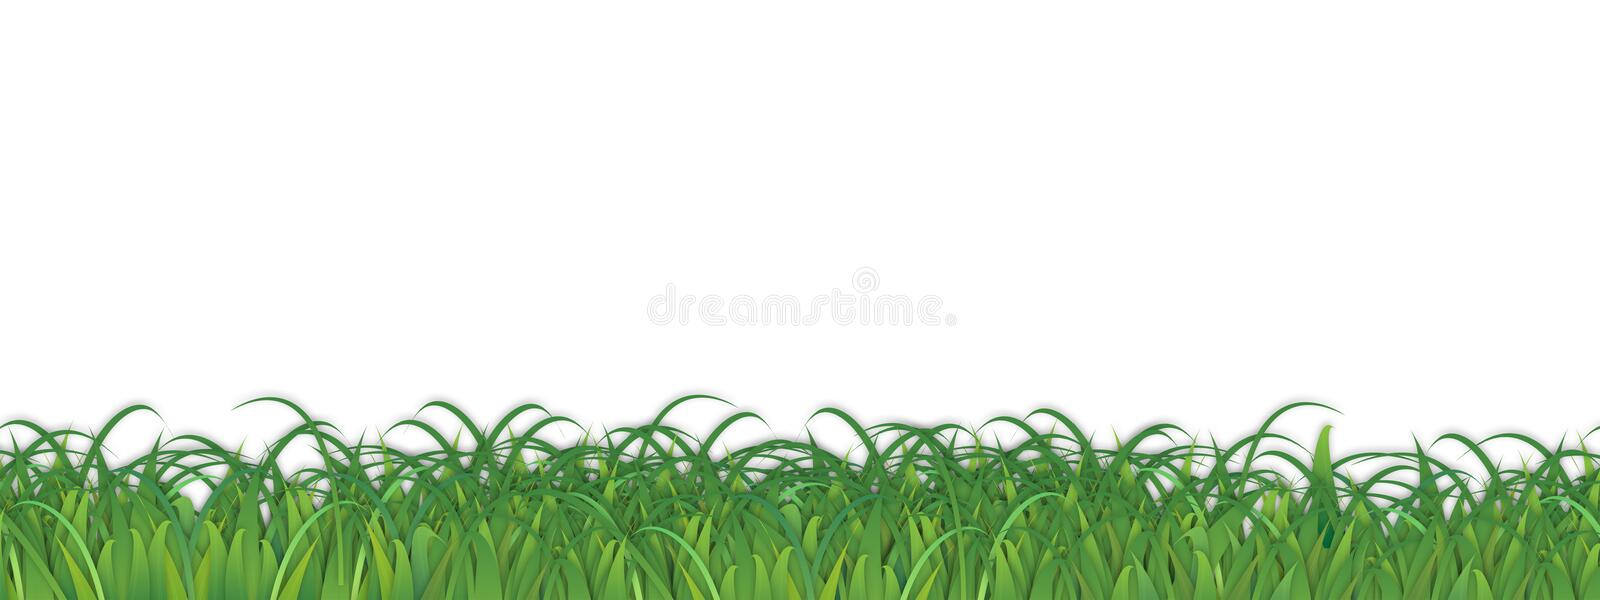 Grass Background Weeds Vector vector illustration